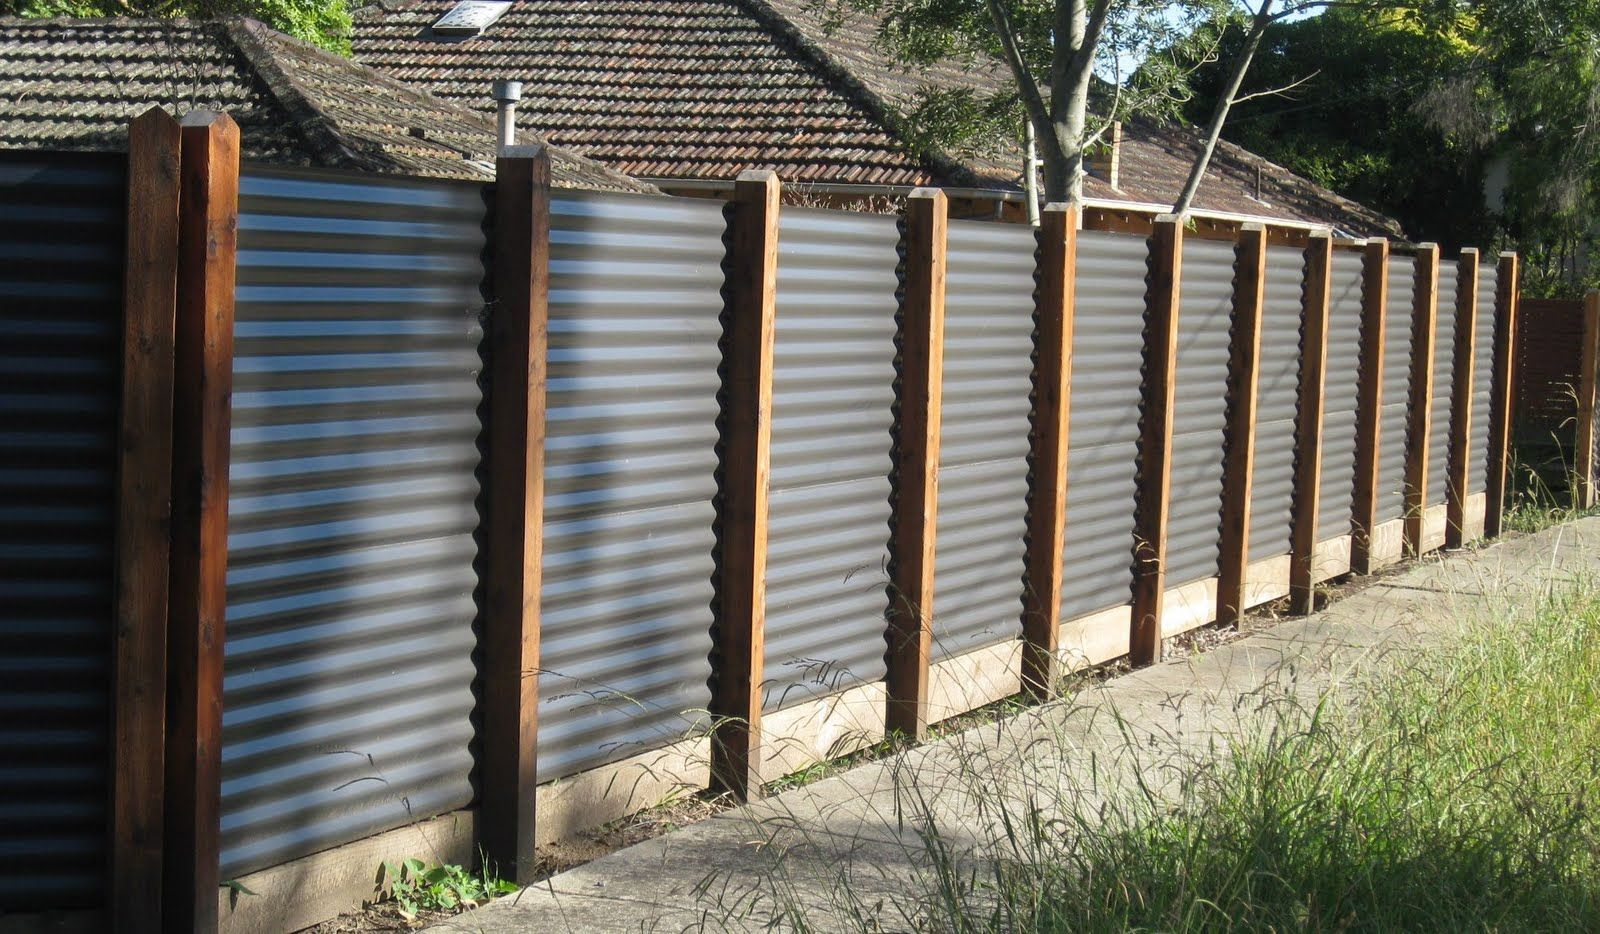 Awesome Privacy Fence Ideas For Residential Homes Privacyfence Fence Fenceideas Fencedesign Corrugated Metal Fence Backyard Fences Iron Fence